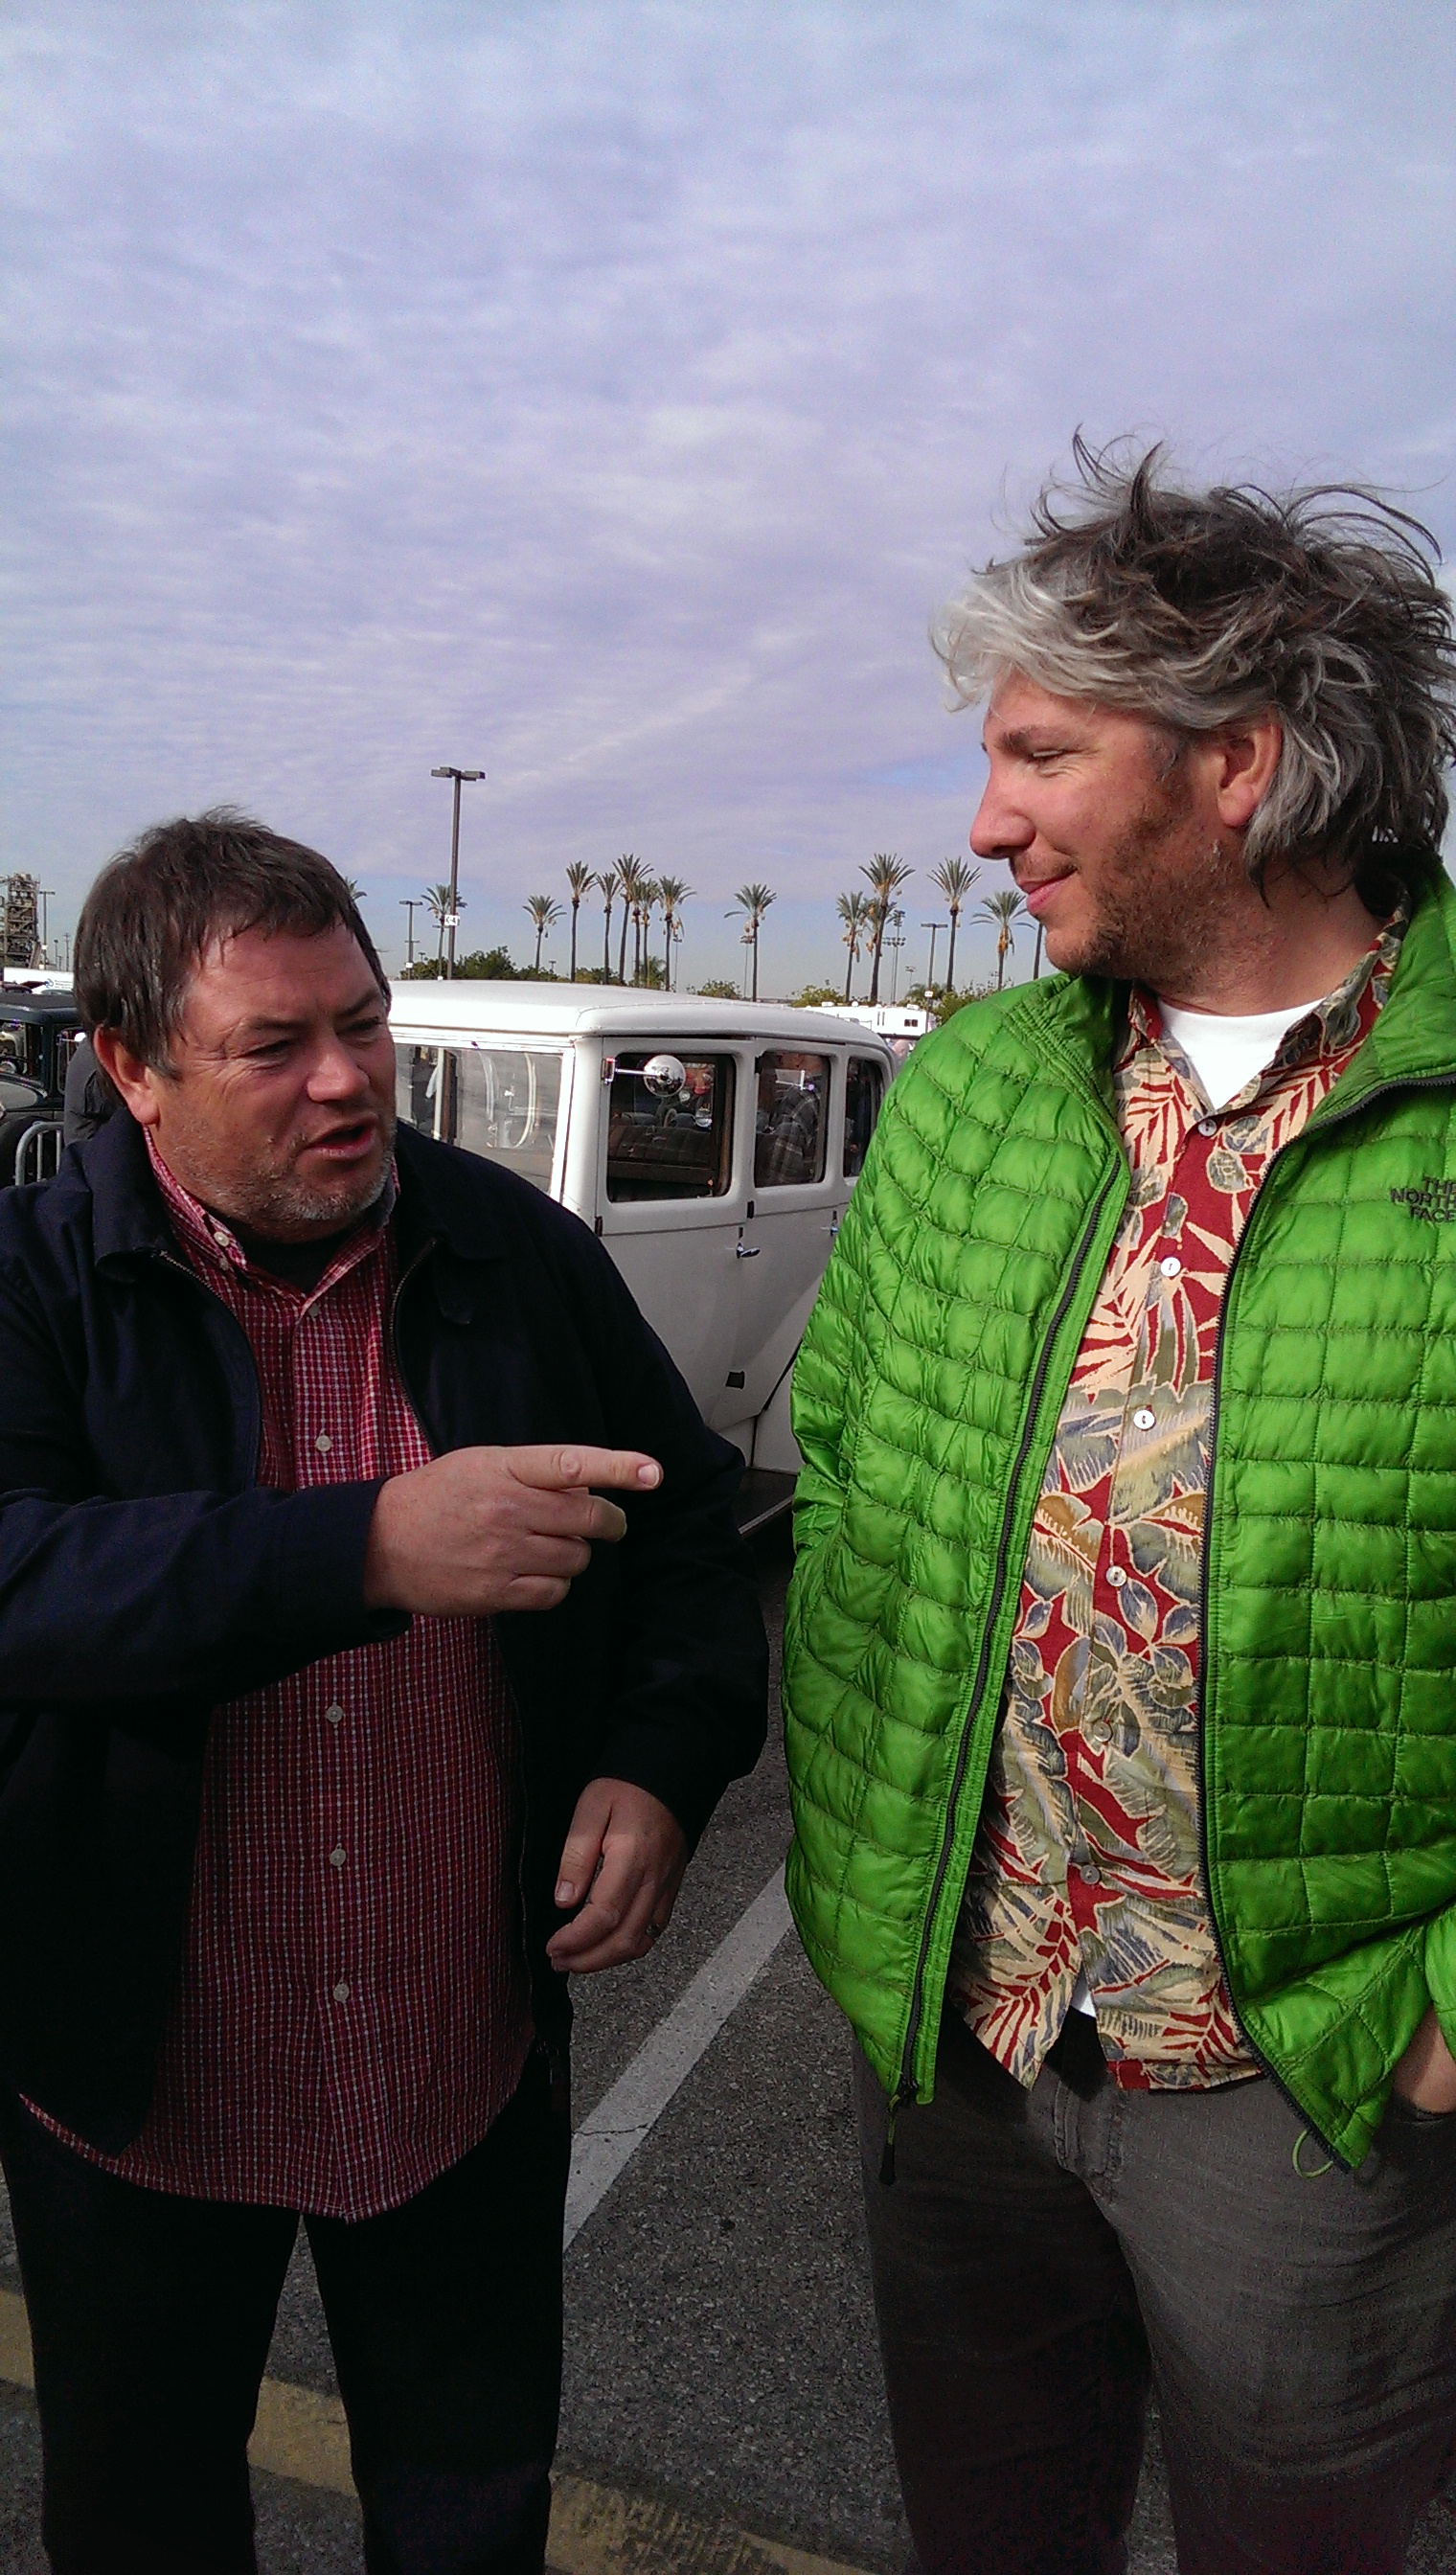 Mike Brewer and Edd China; hanging with the Wheeler Dealer guys